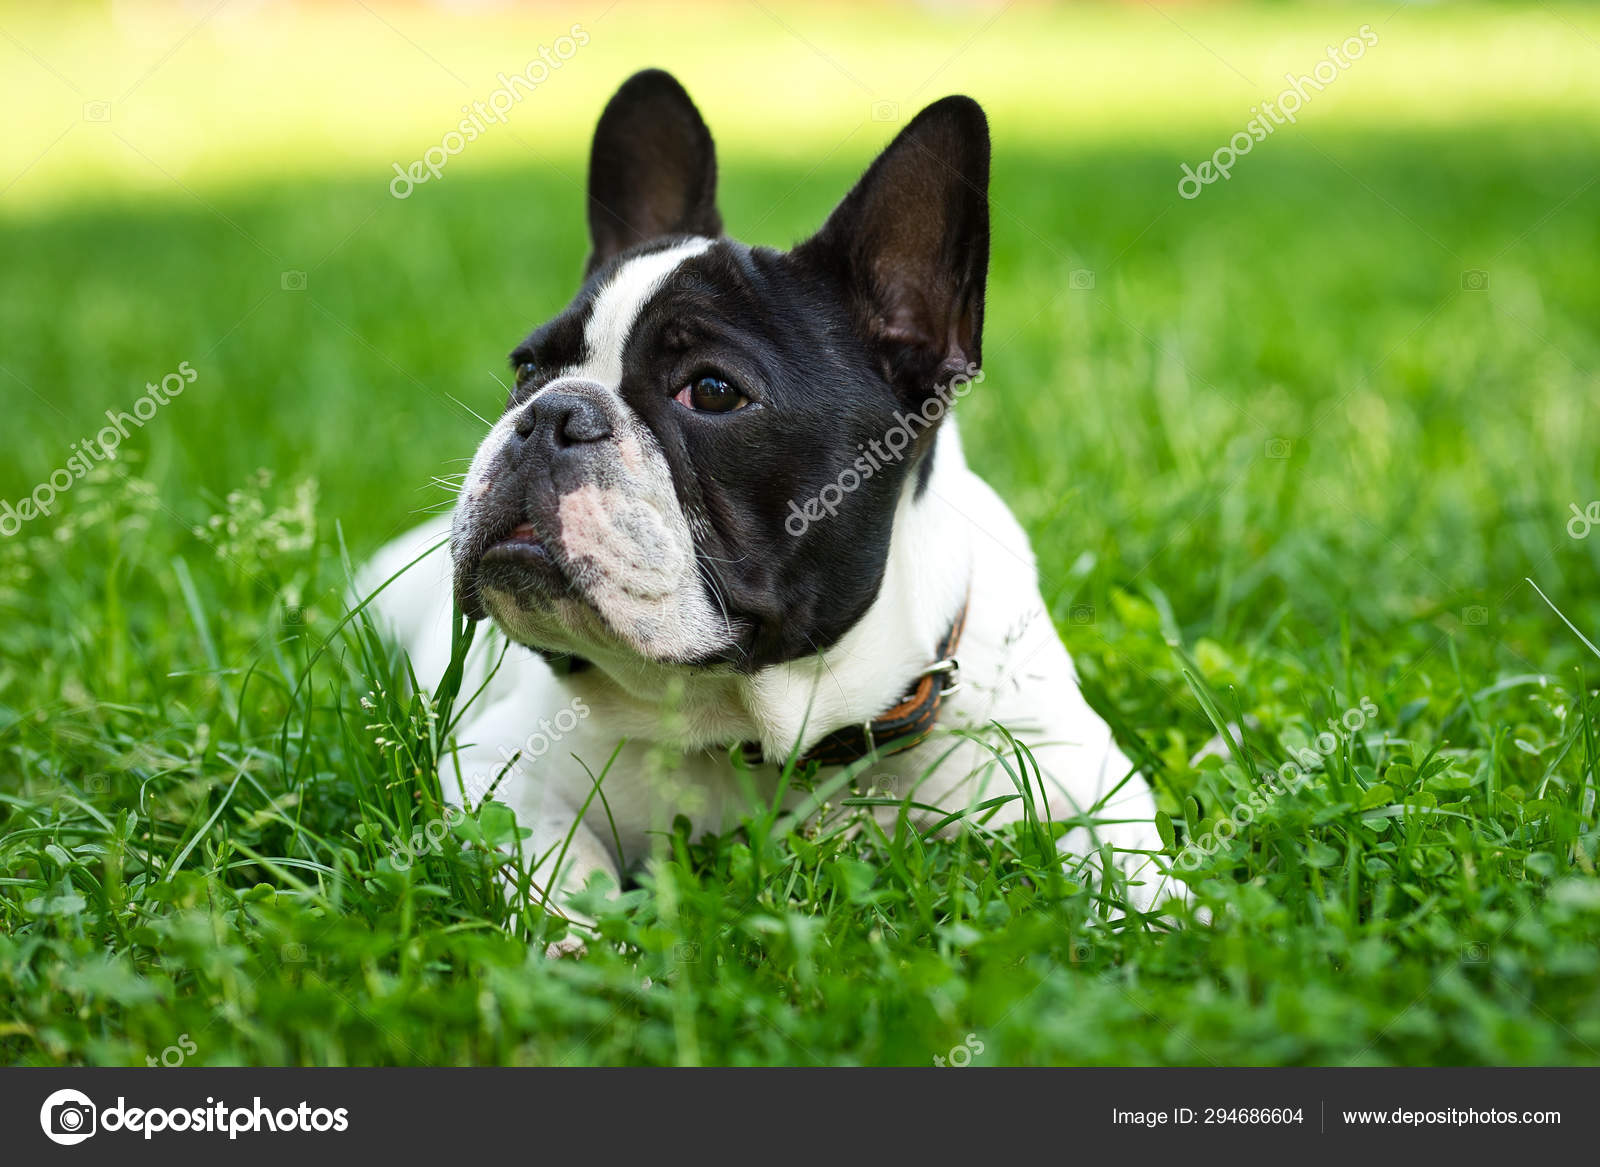 Cute Adorable Black And White French Bulldog Puppy In The Grass Stock Photo C Keyci13 Gmail Com 294686604